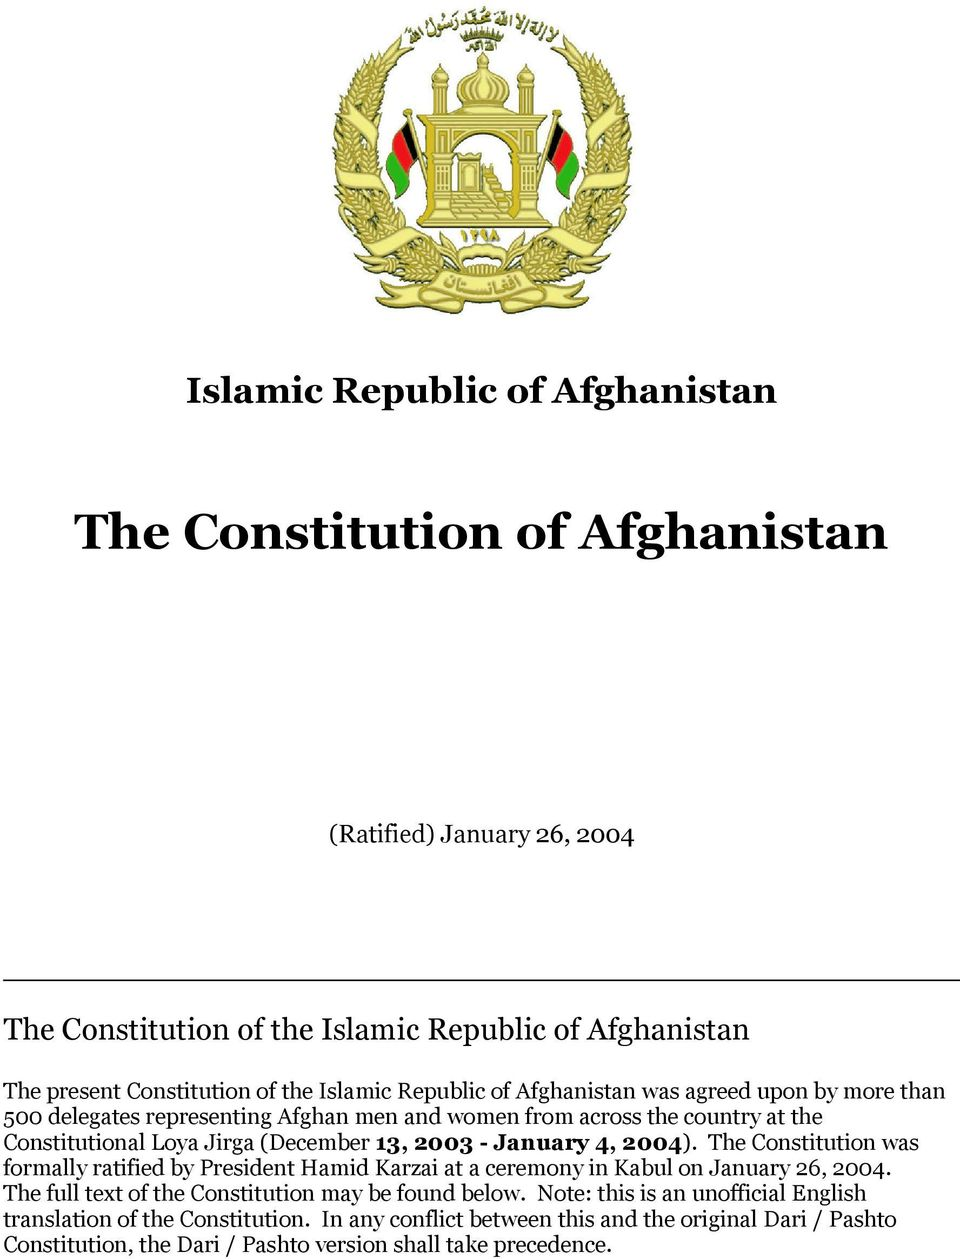 was formally ratified by President Hamid Karzai at a ceremony in Kabul on January 26, 2004. The full text of the Constitution may be found below.